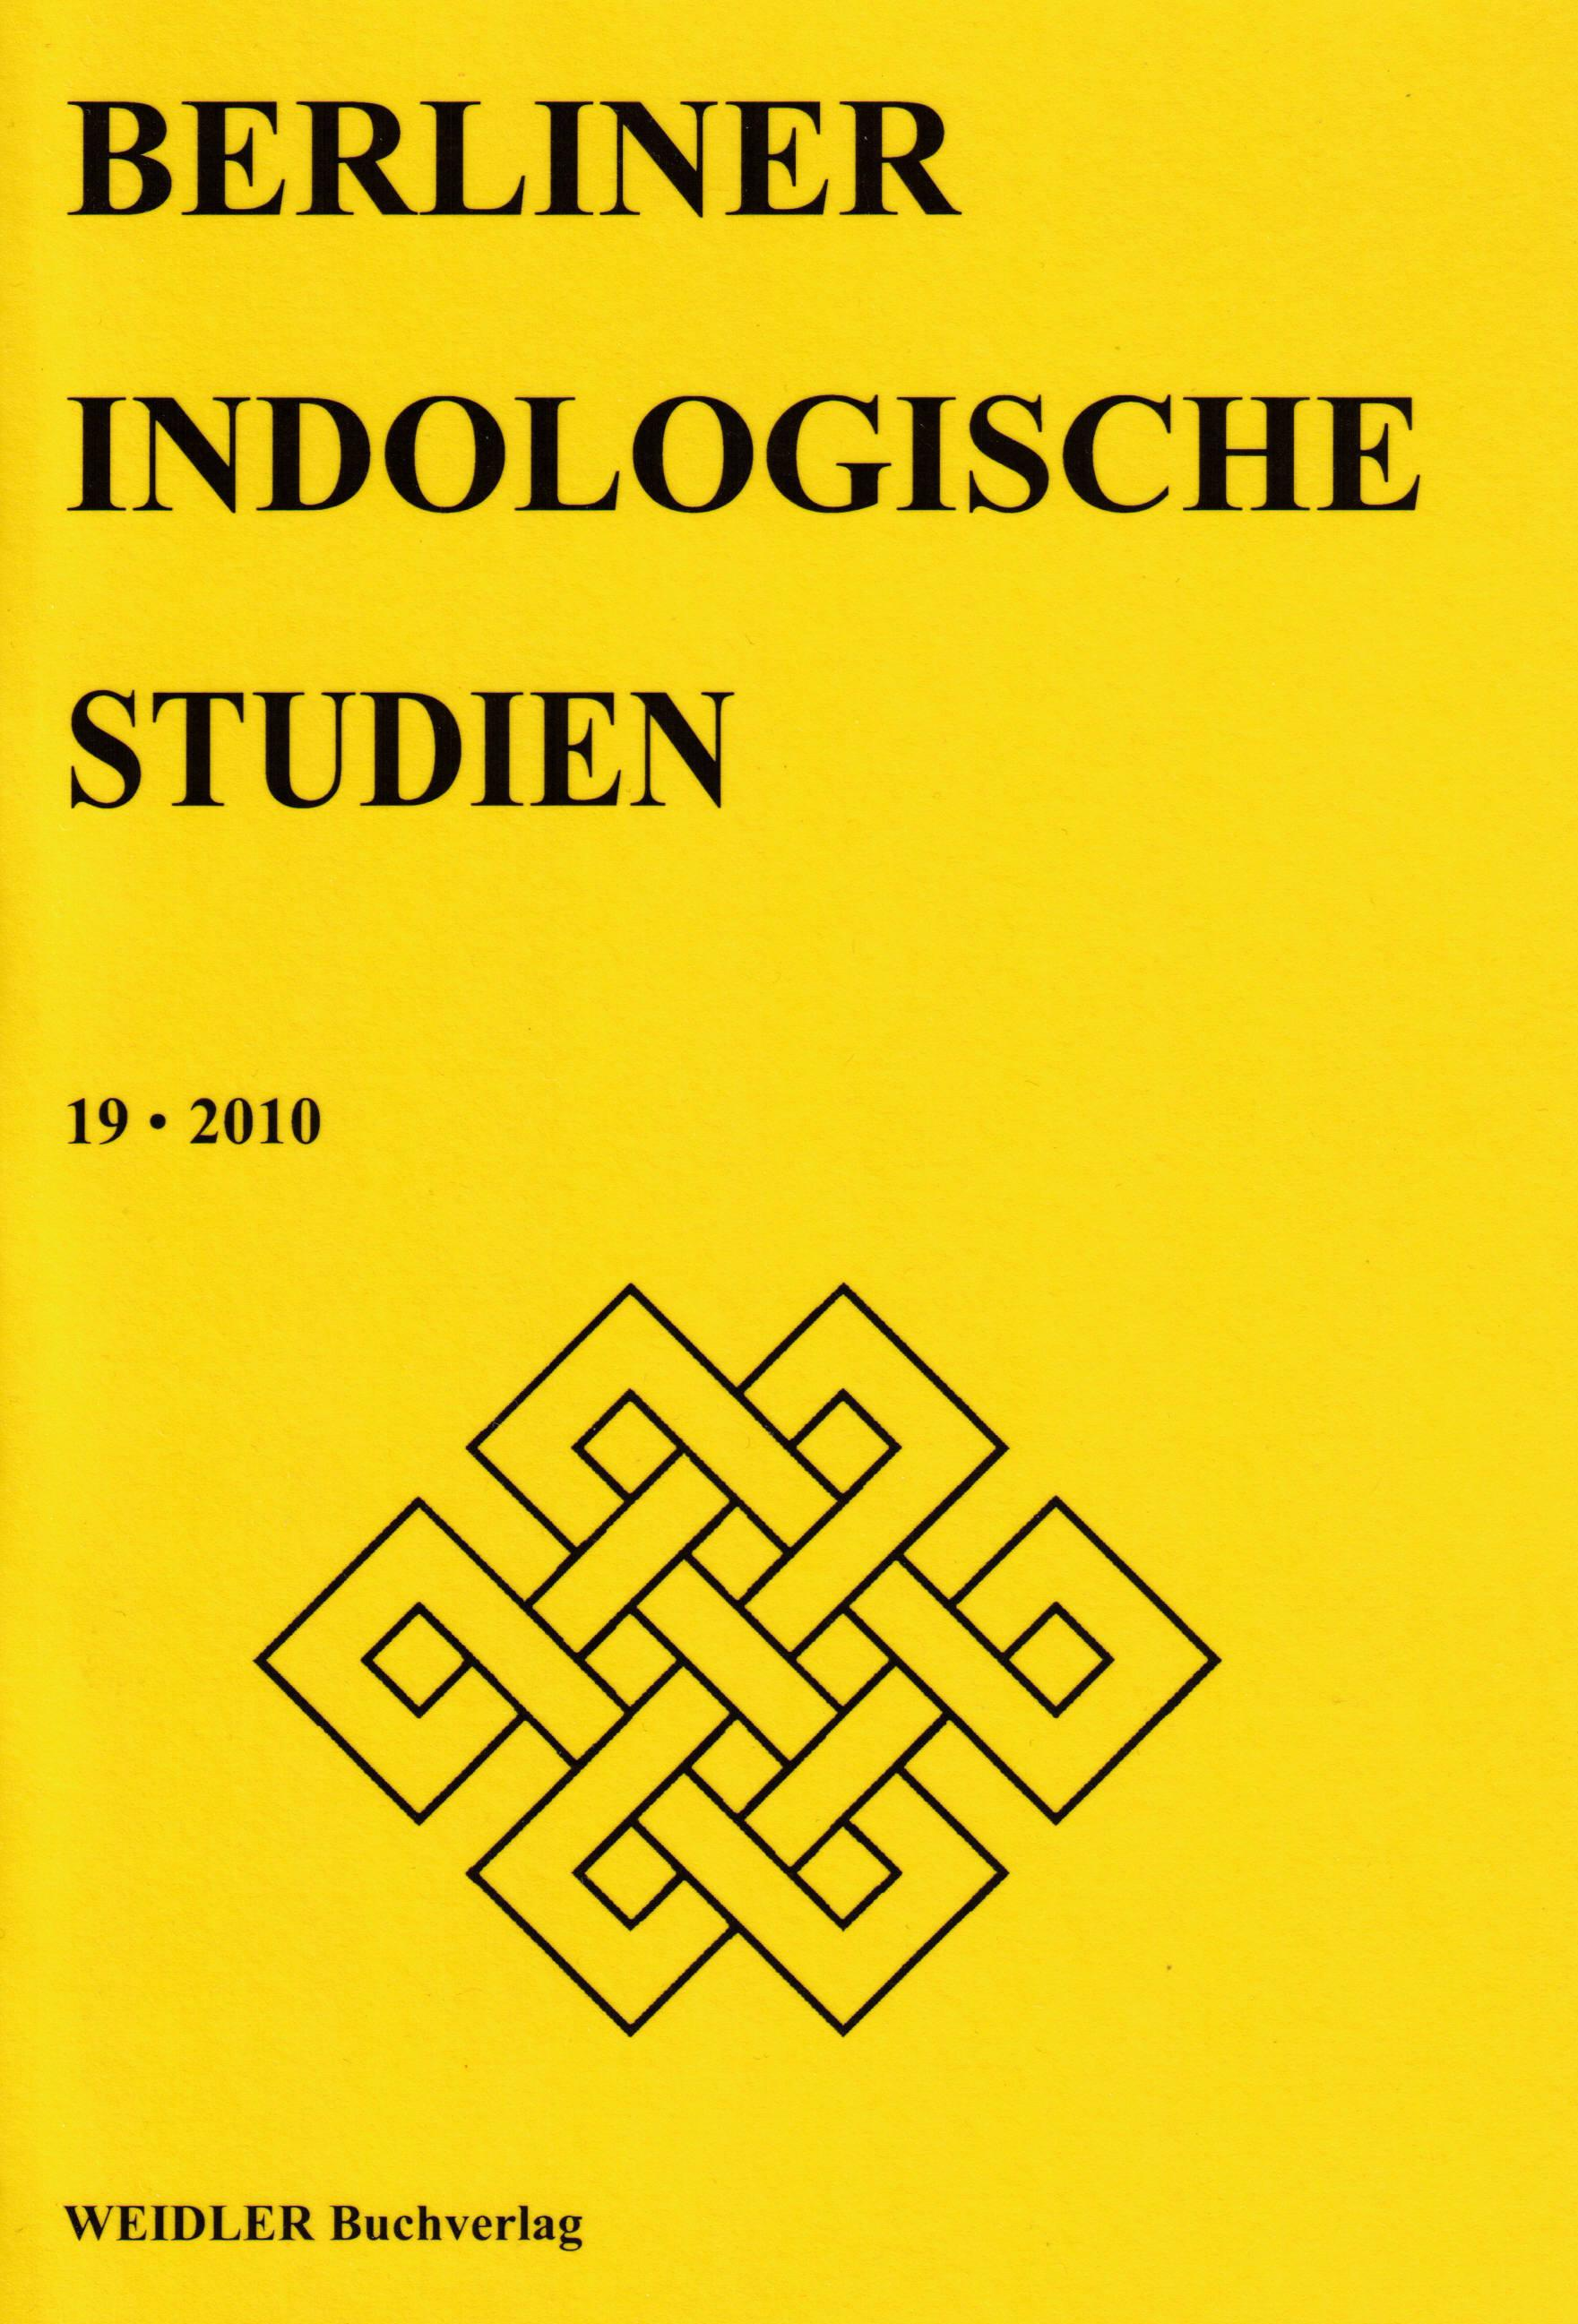 http://www.herenow4u.net/fileadmin/v3media/pics/press/BIS/Berliner_Indologische_Studien.jpg